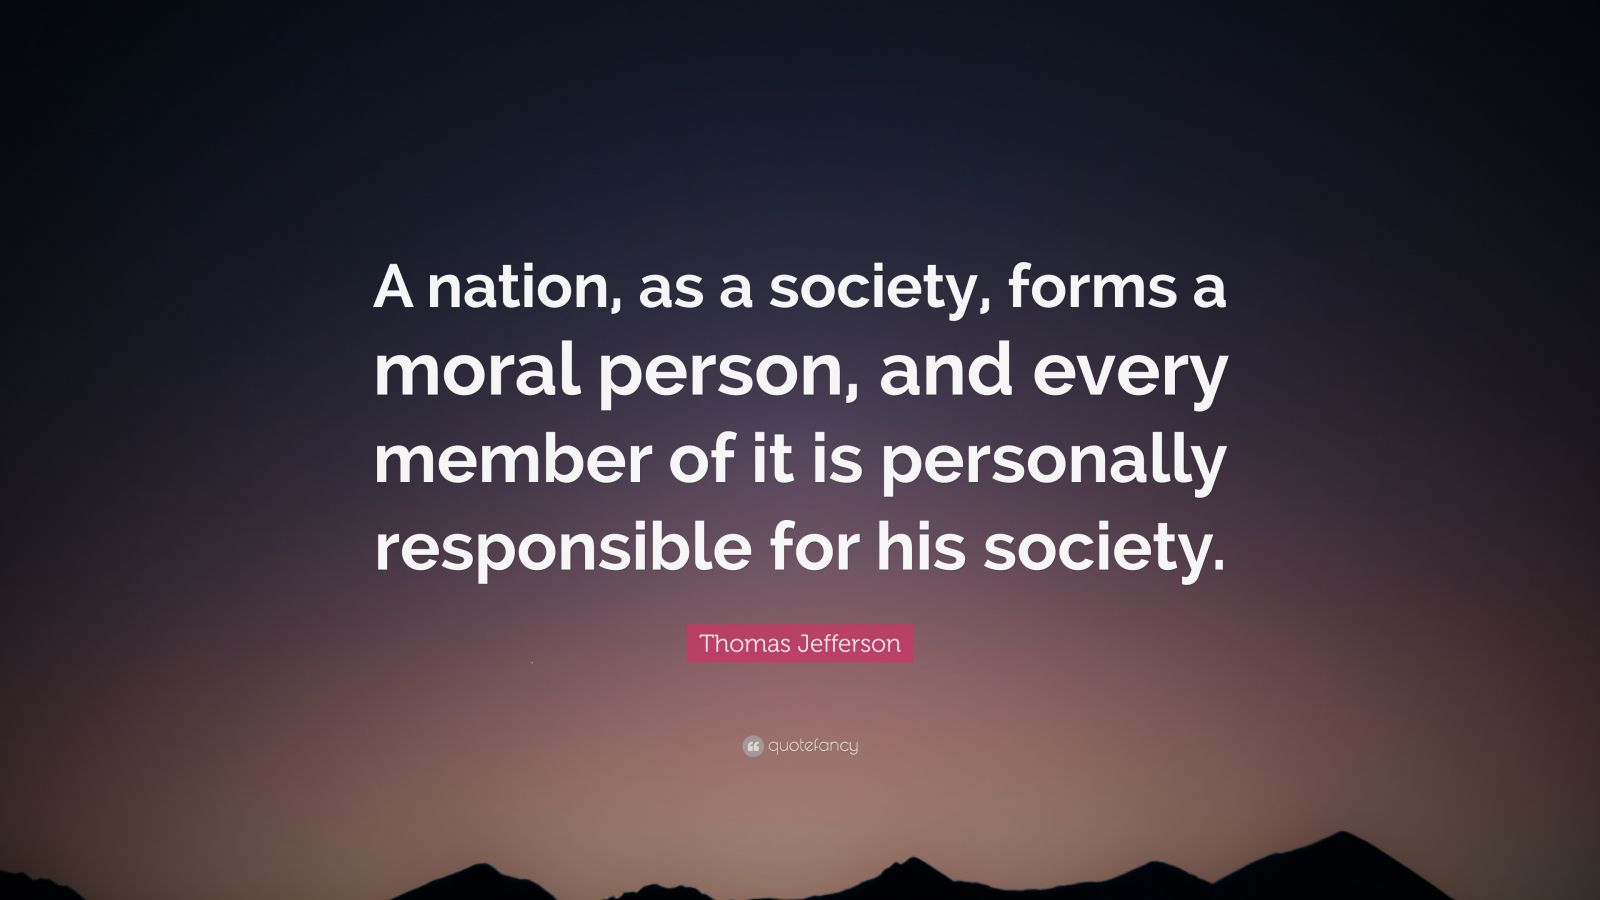 """Thomas Jefferson Quote: """"A nation, as a society, forms a moral person, and every member of it is personally responsible for his society."""""""